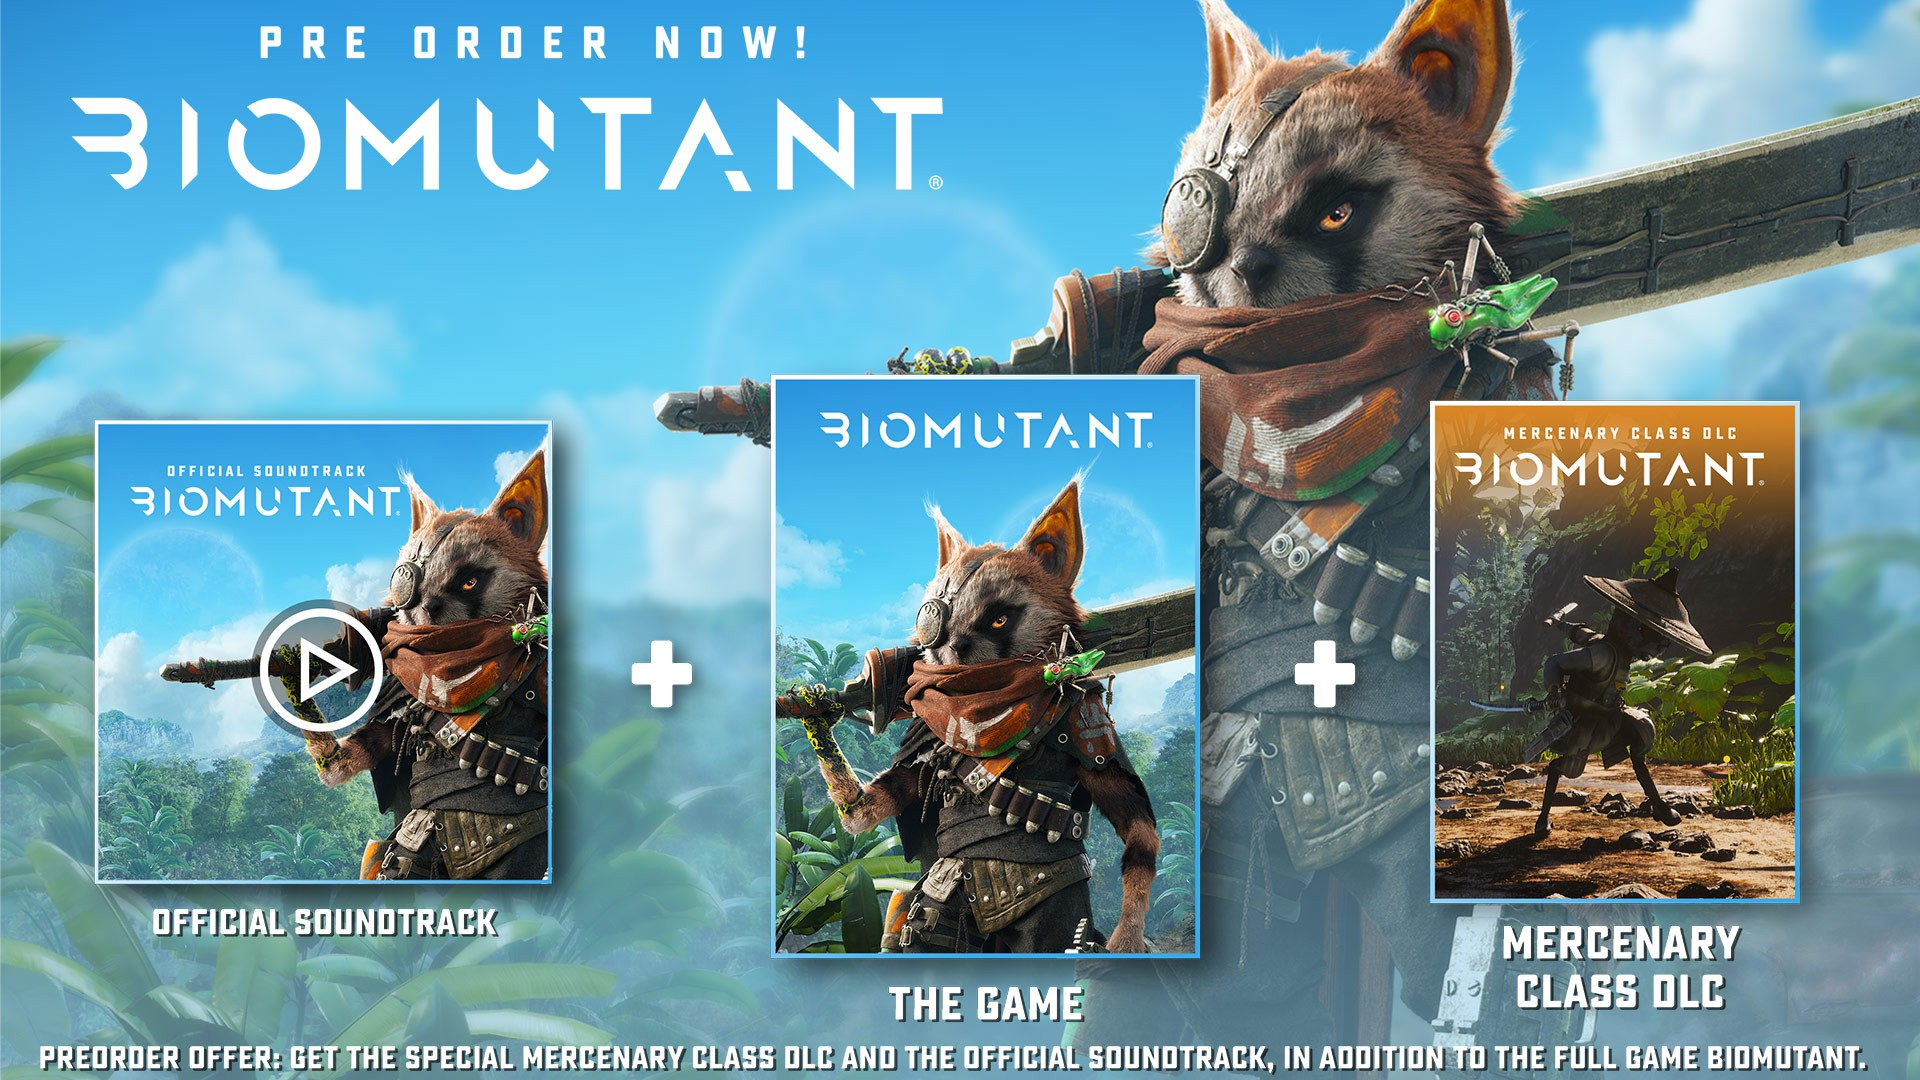 Find the best gaming PC for BIOMUTANT